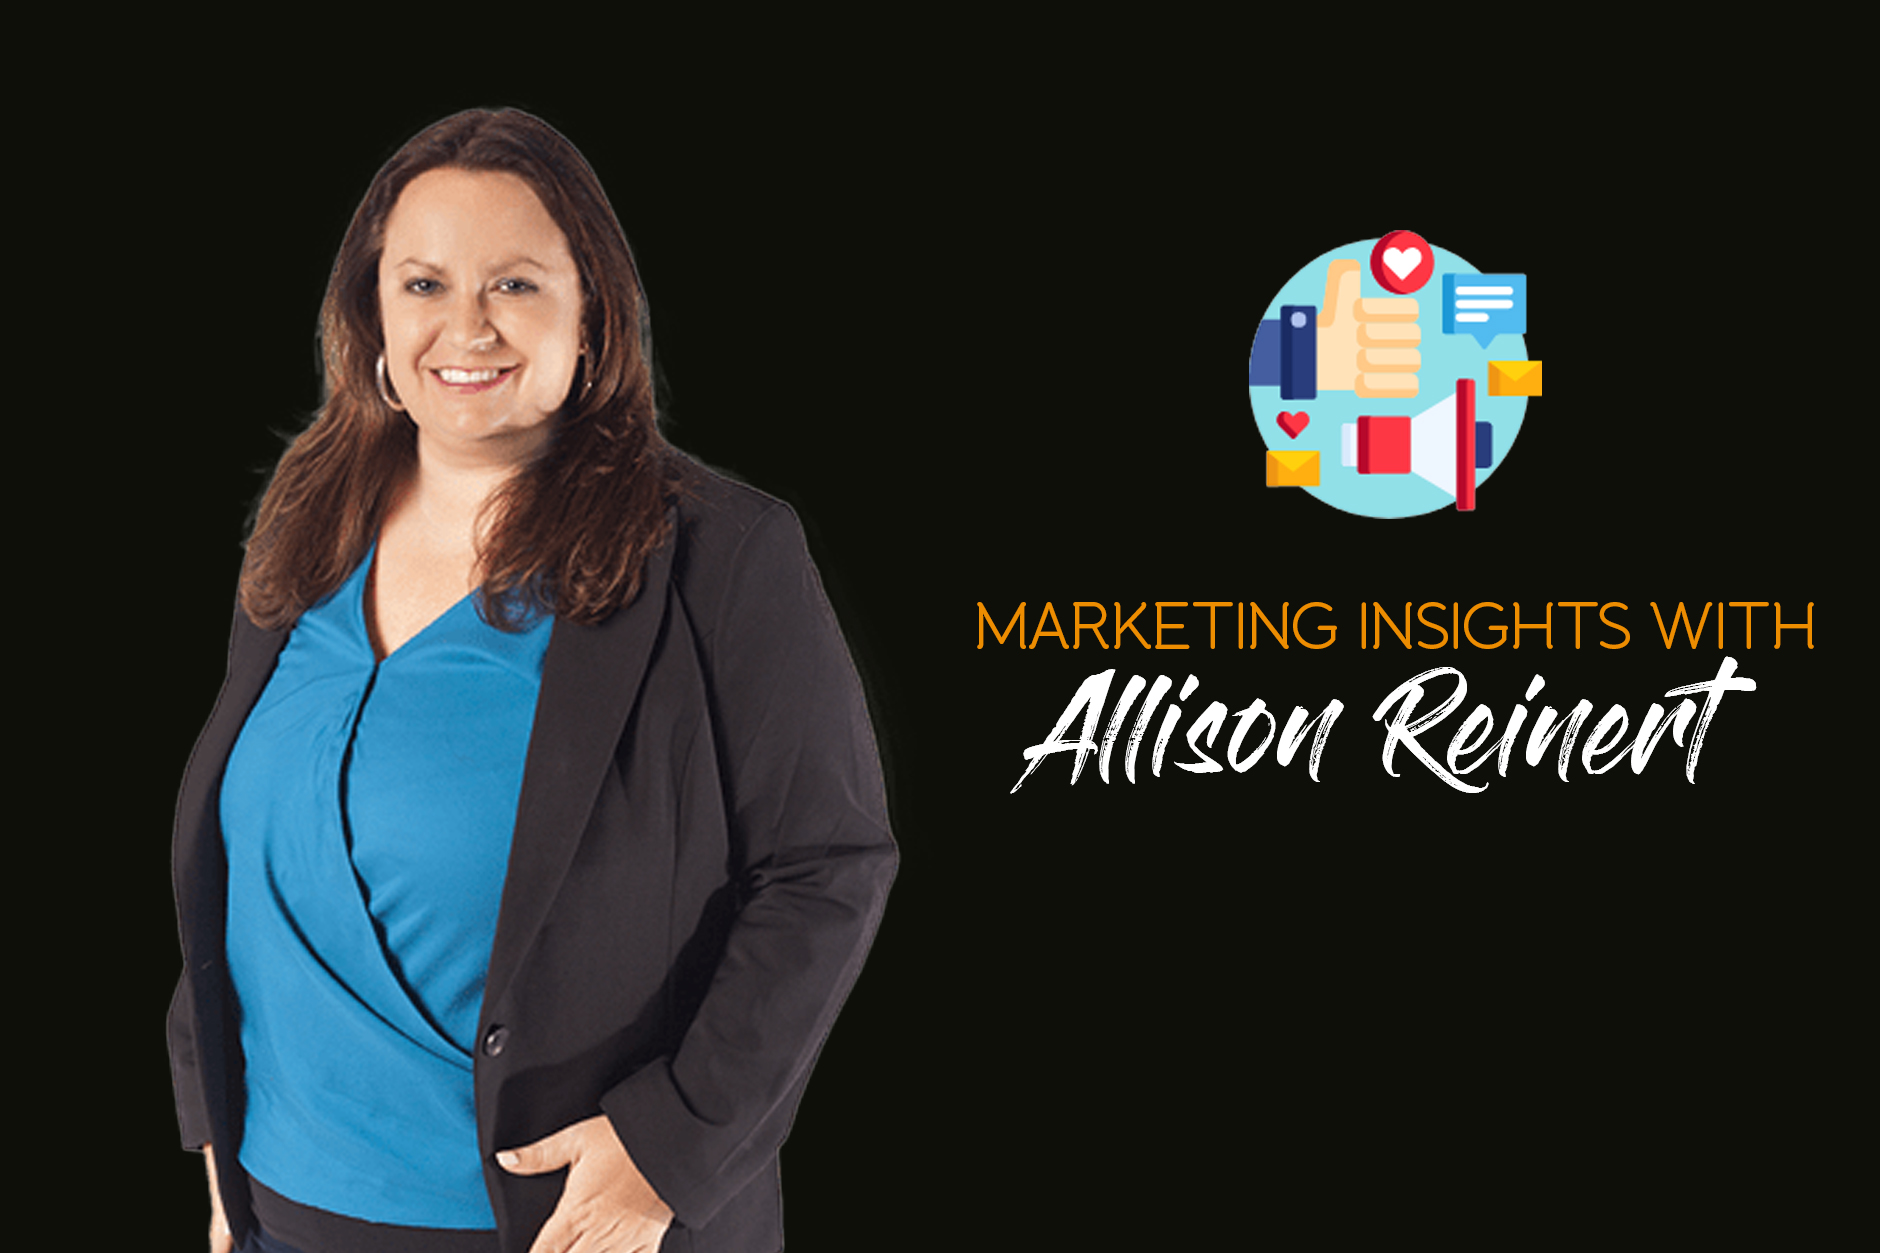 Marketing Insights with Allison Reinert